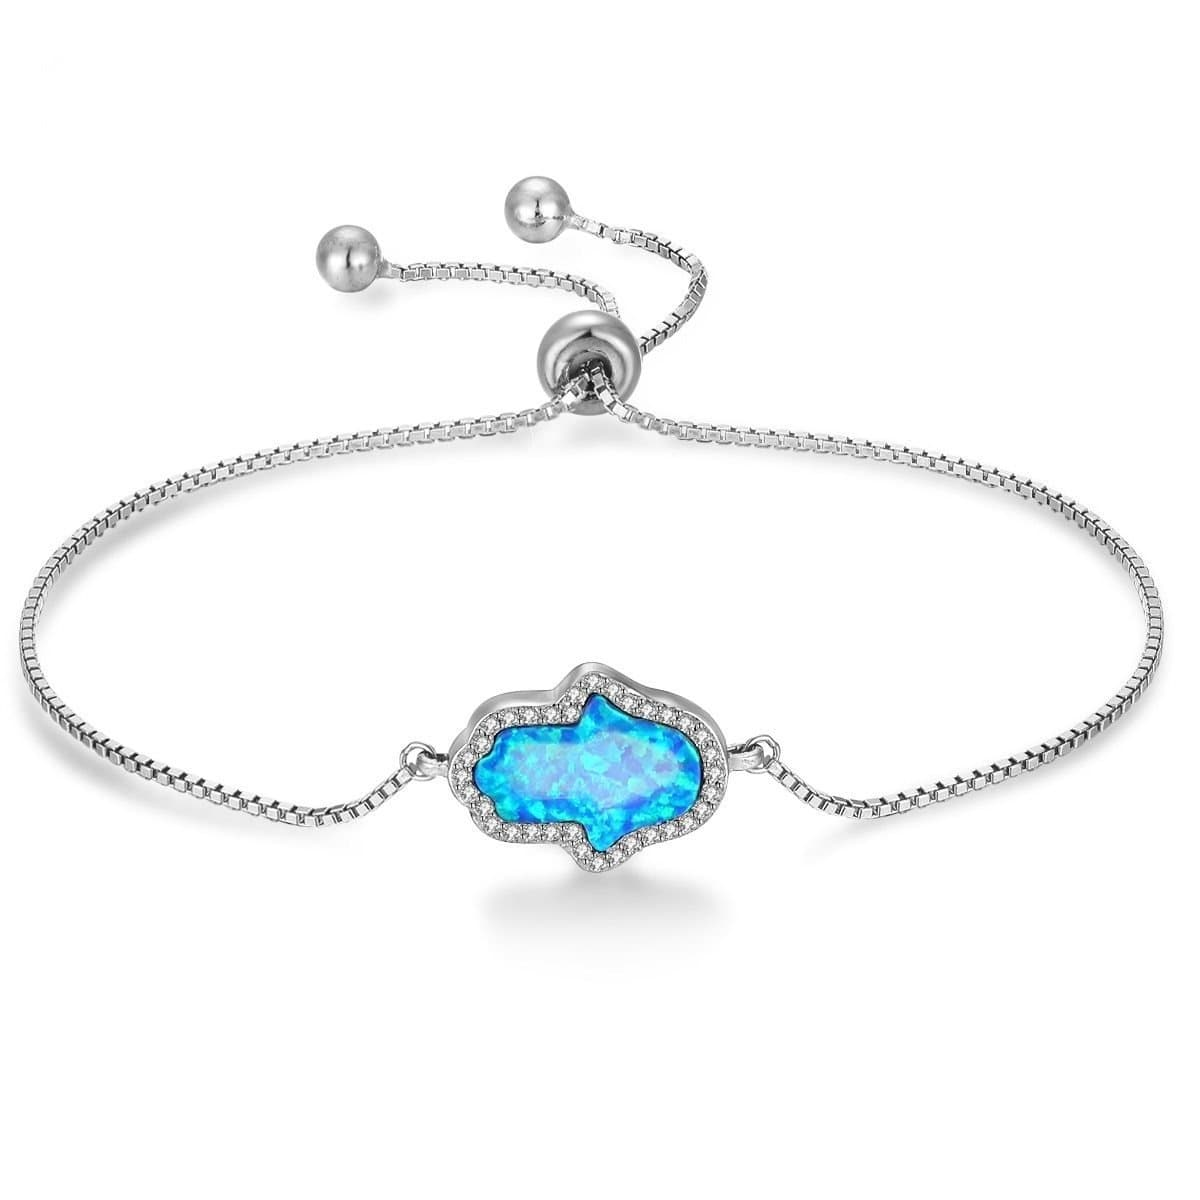 Hamsa Opal 925 Sterling Silver Bracelet Adjustable - Sutra Wear